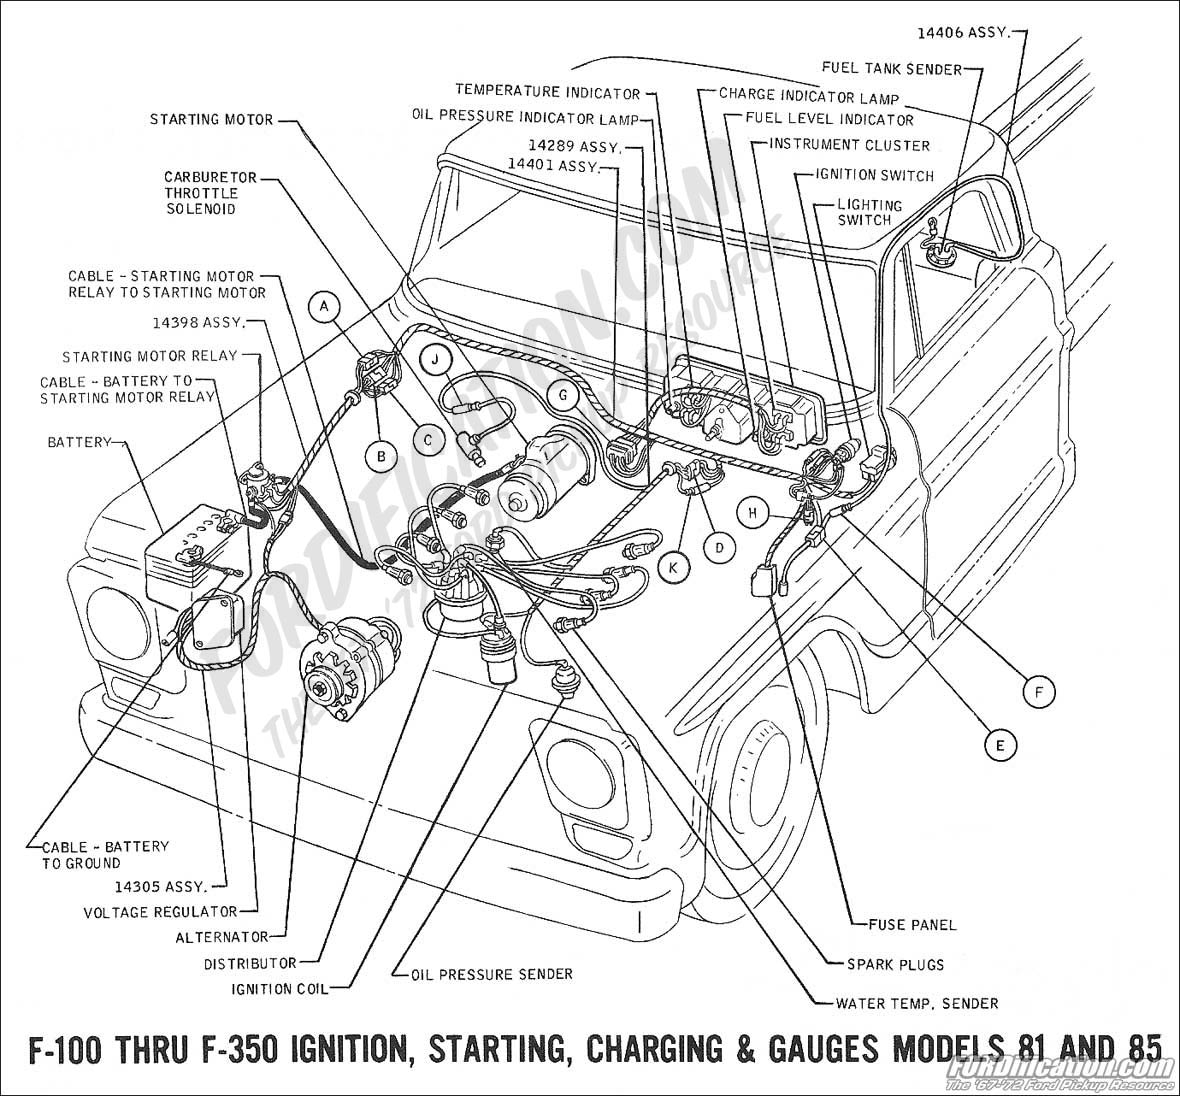 Ford Volt Gauge Wiring Diagram on condensate splitter diagram, water meter installation diagram, condensation diagram, volt meter electronic schematic diagrams,